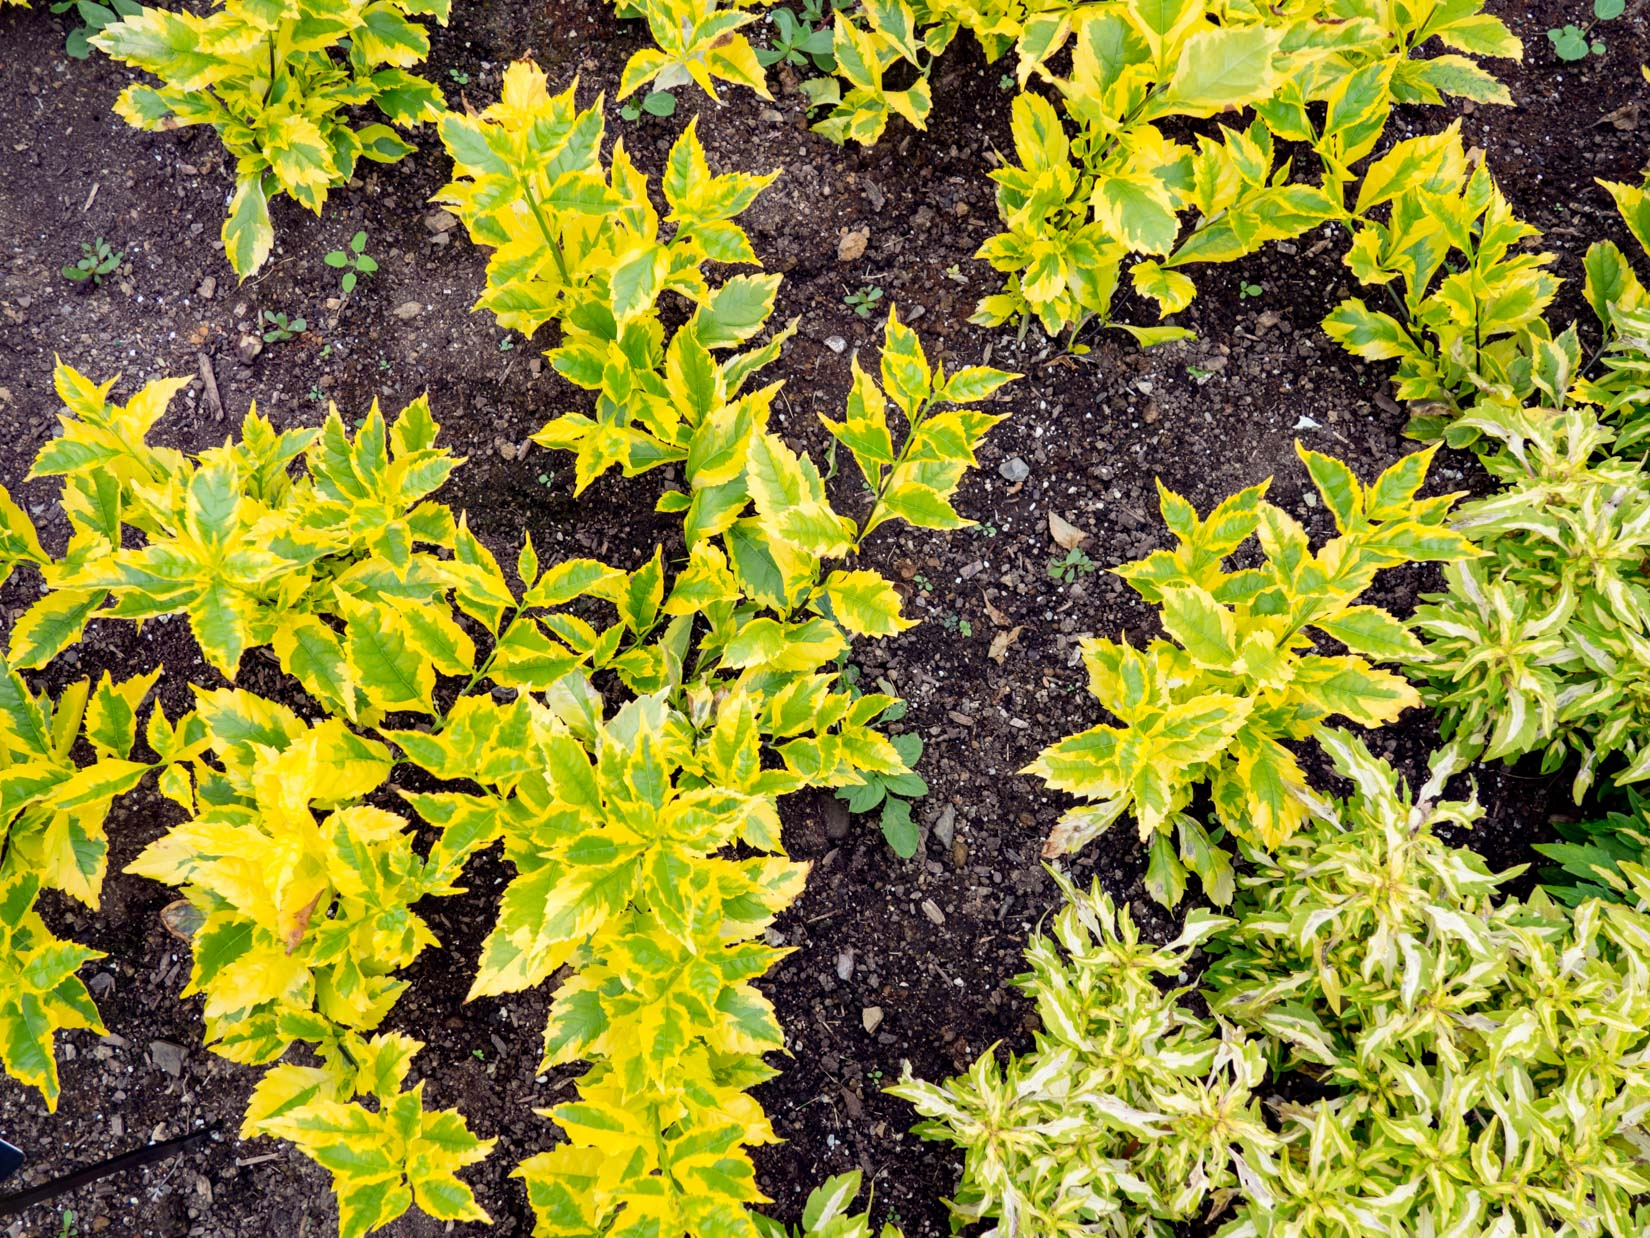 Yellow and Green Leaves on Soil